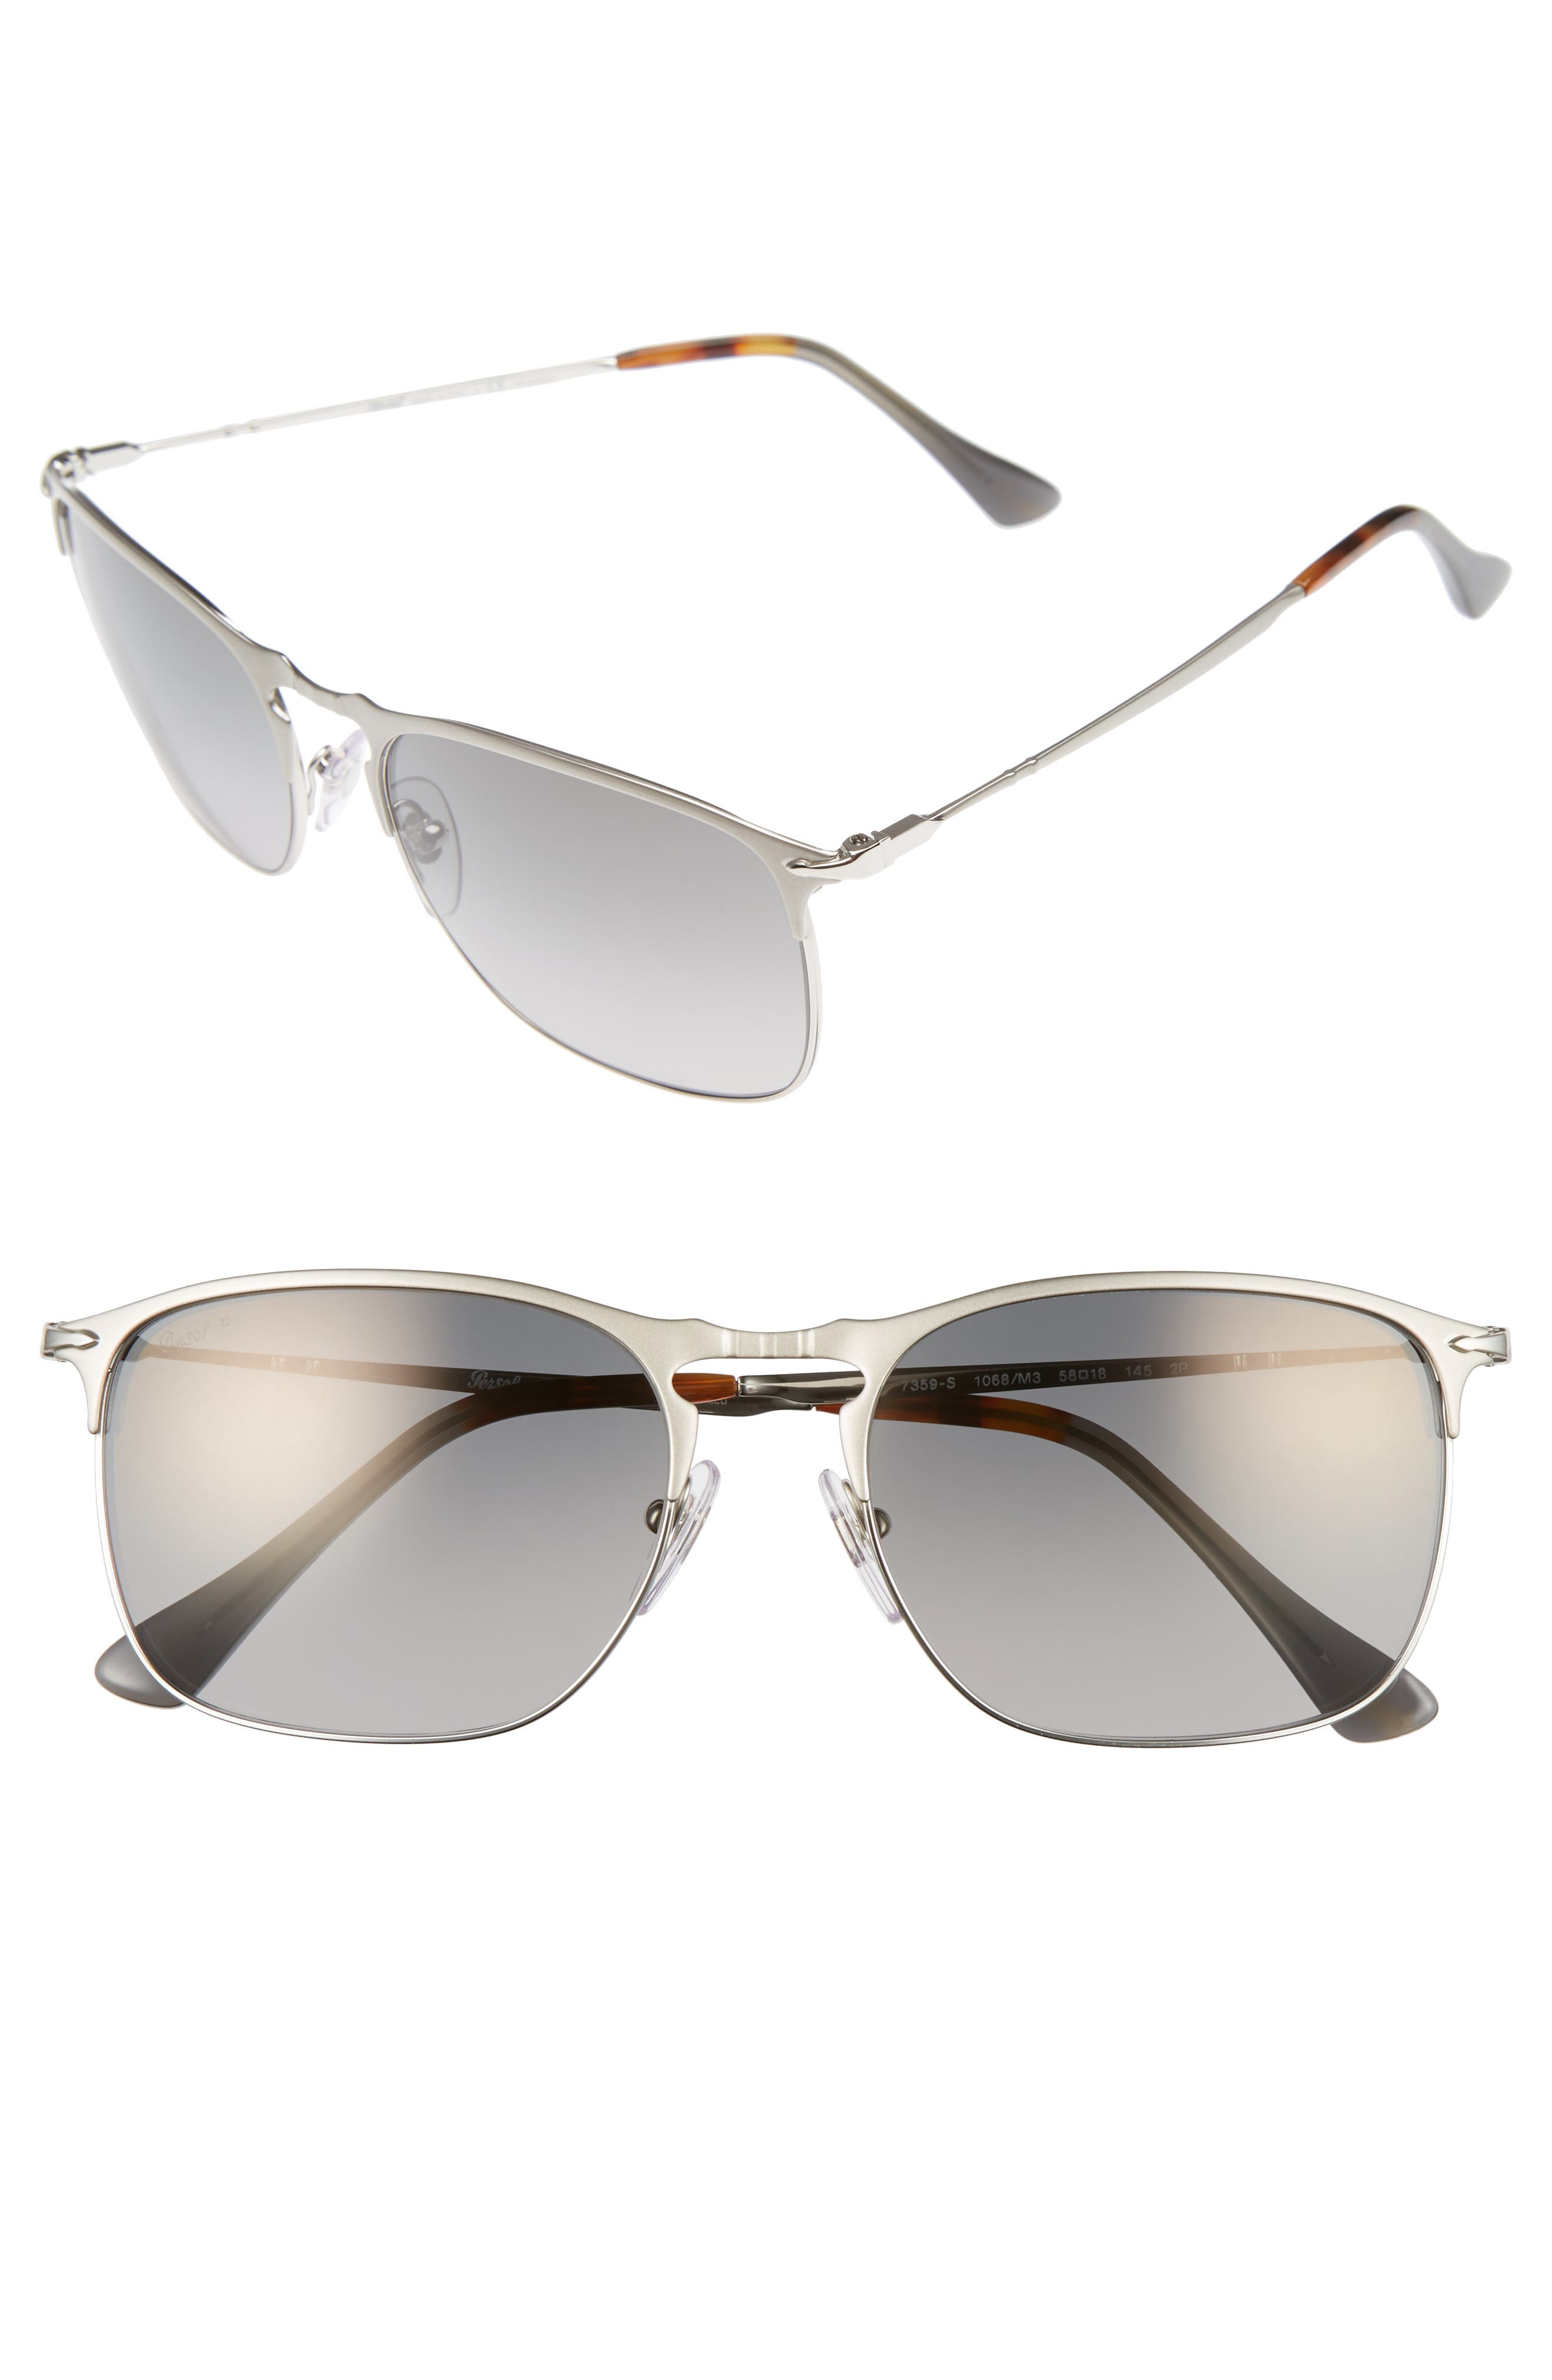 Main Image - Persol Evolution 58mm Polarized Aviator Sunglasses